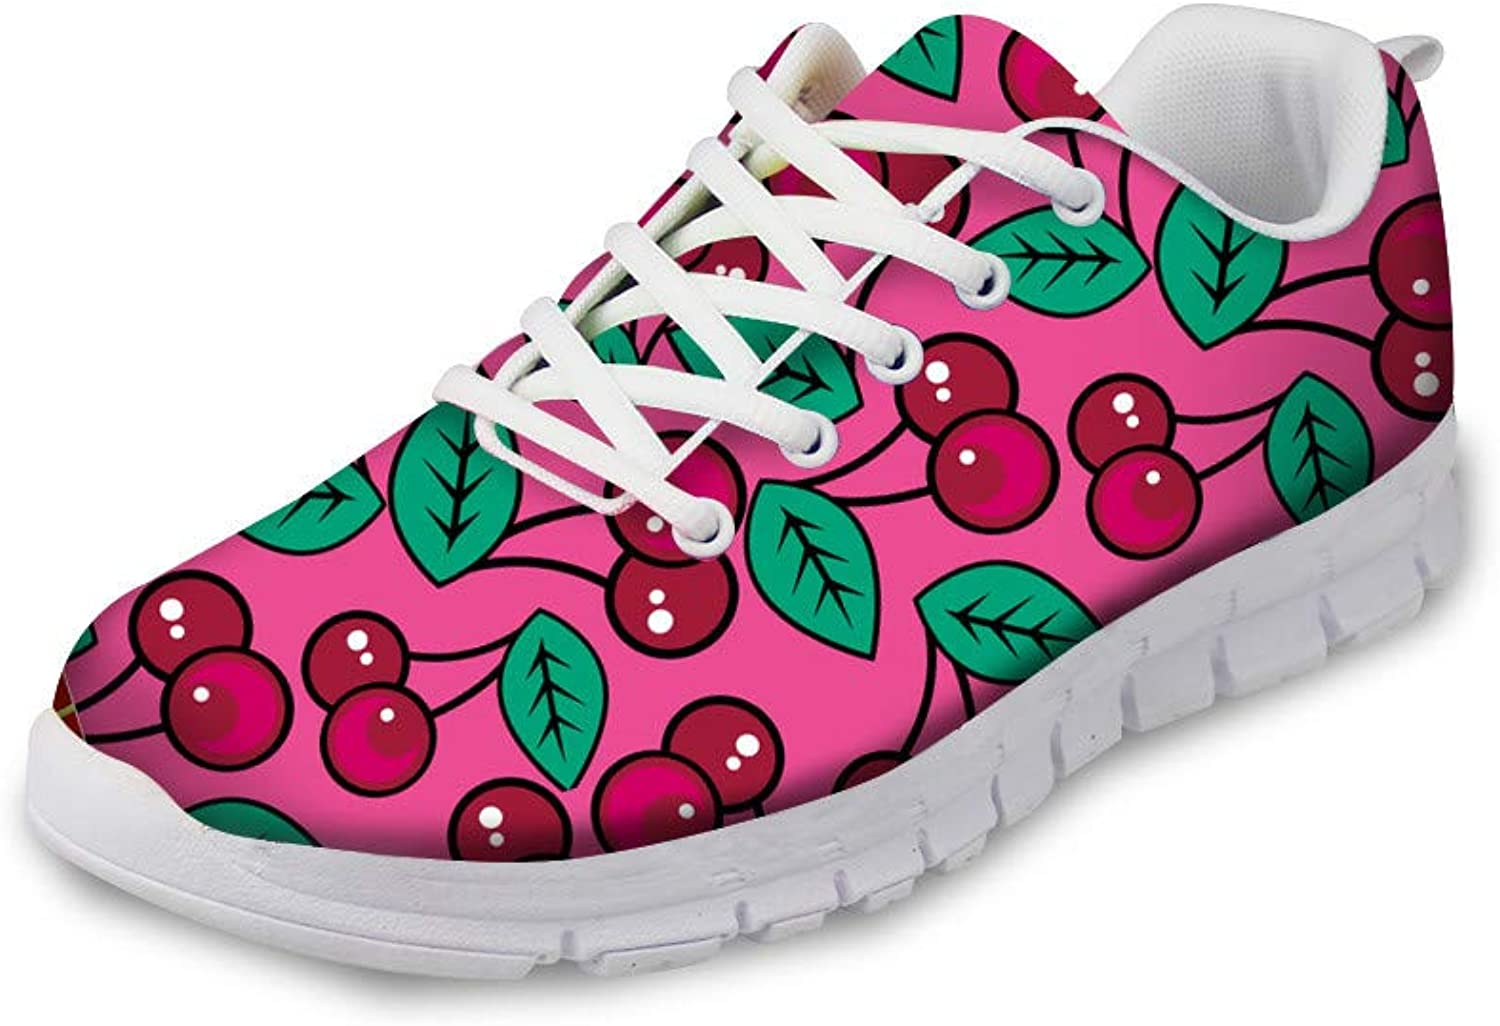 Fruit Print Fashion Designer Sneakers Casual Walking shoes for Women Men Kids Athletic